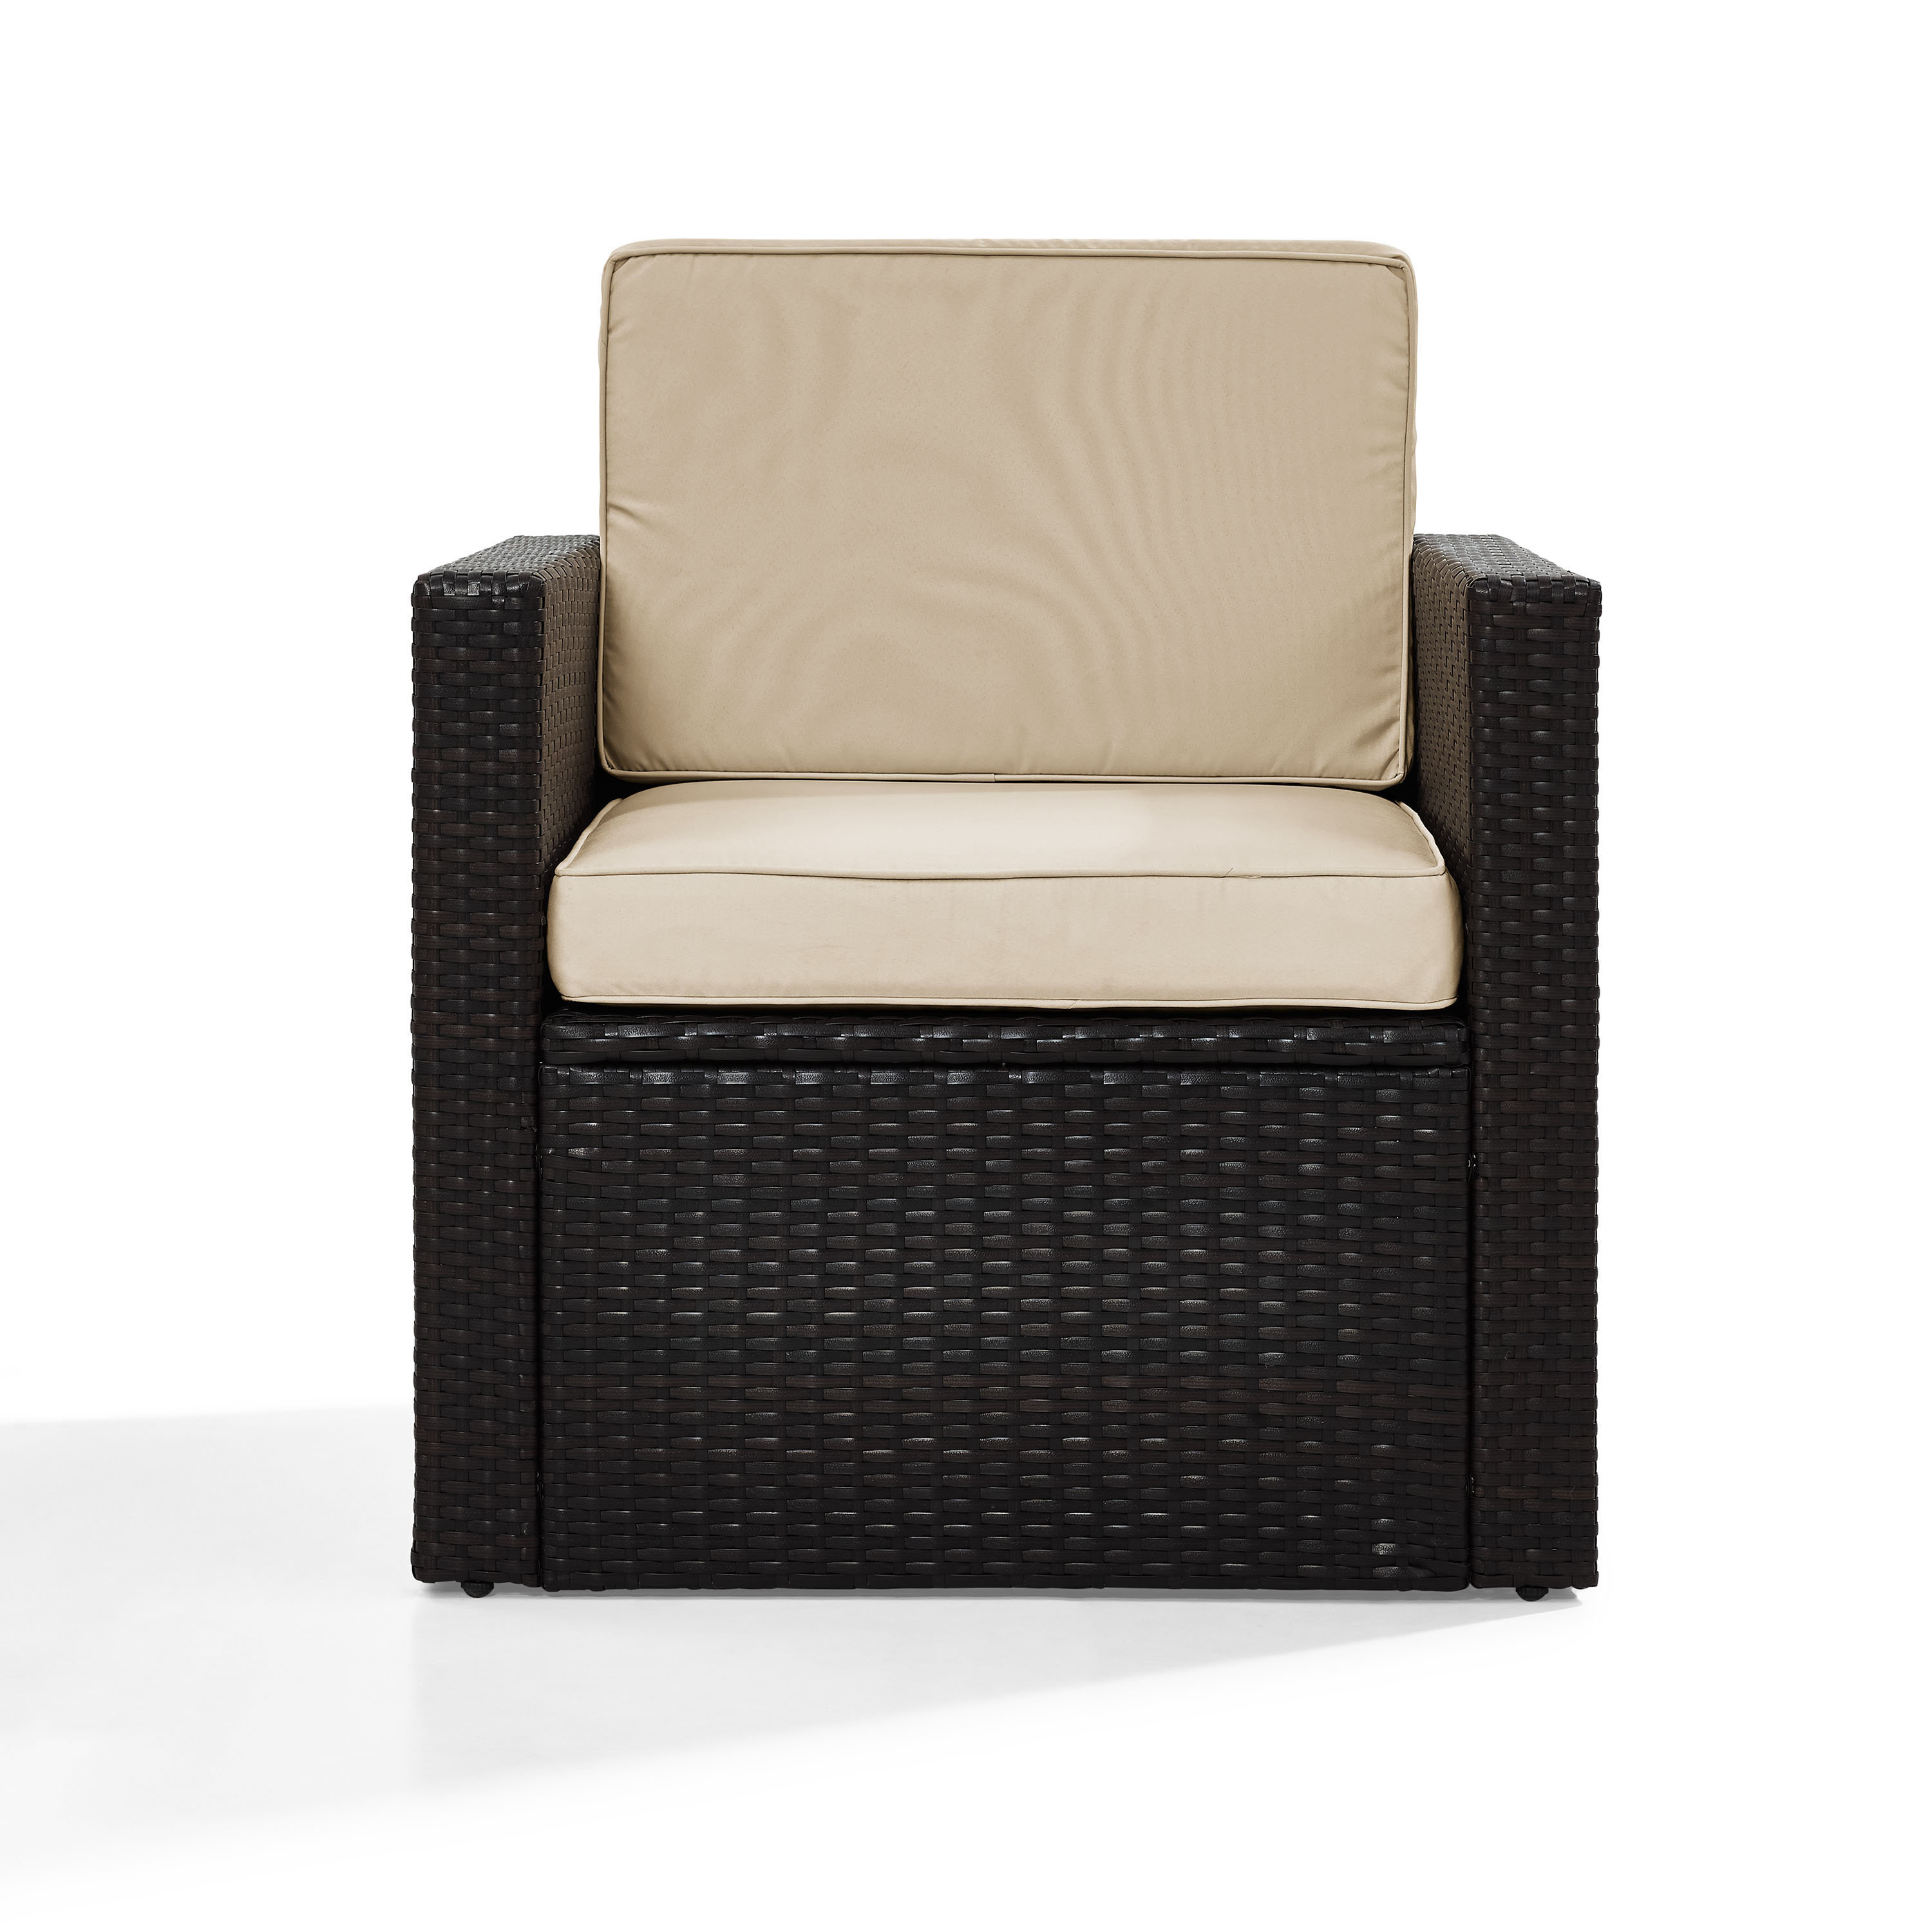 Belton Outdoor Wicker Deep Seating Patio Chair With Cushion Within Favorite Stapleton Wicker Resin Patio Sofas With Cushions (View 3 of 20)